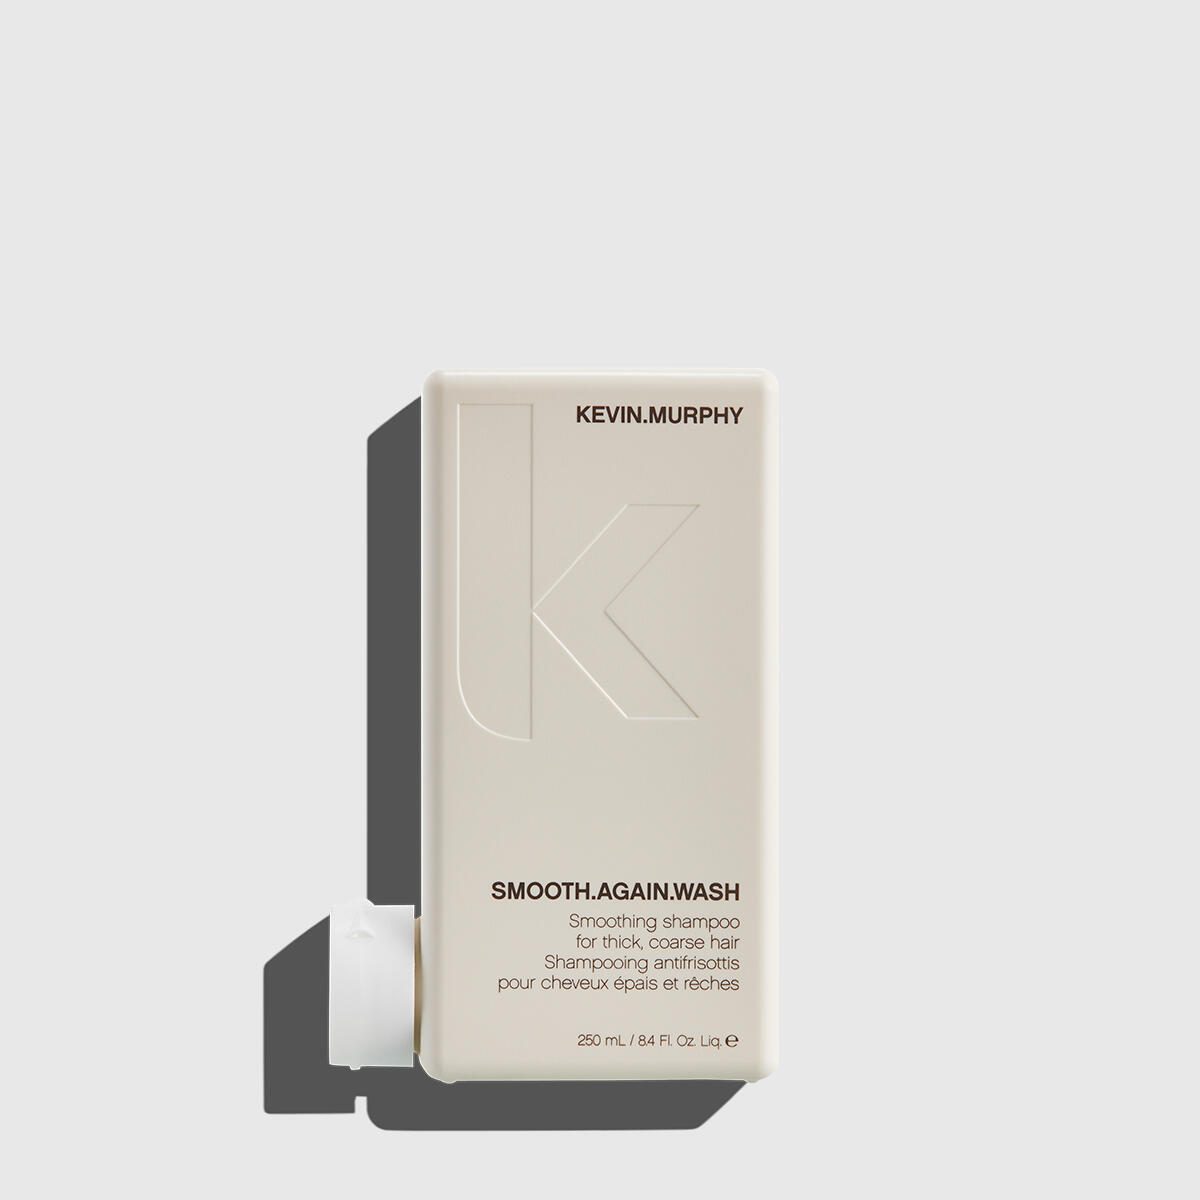 Kevin Murphy Smooth Again Wash null